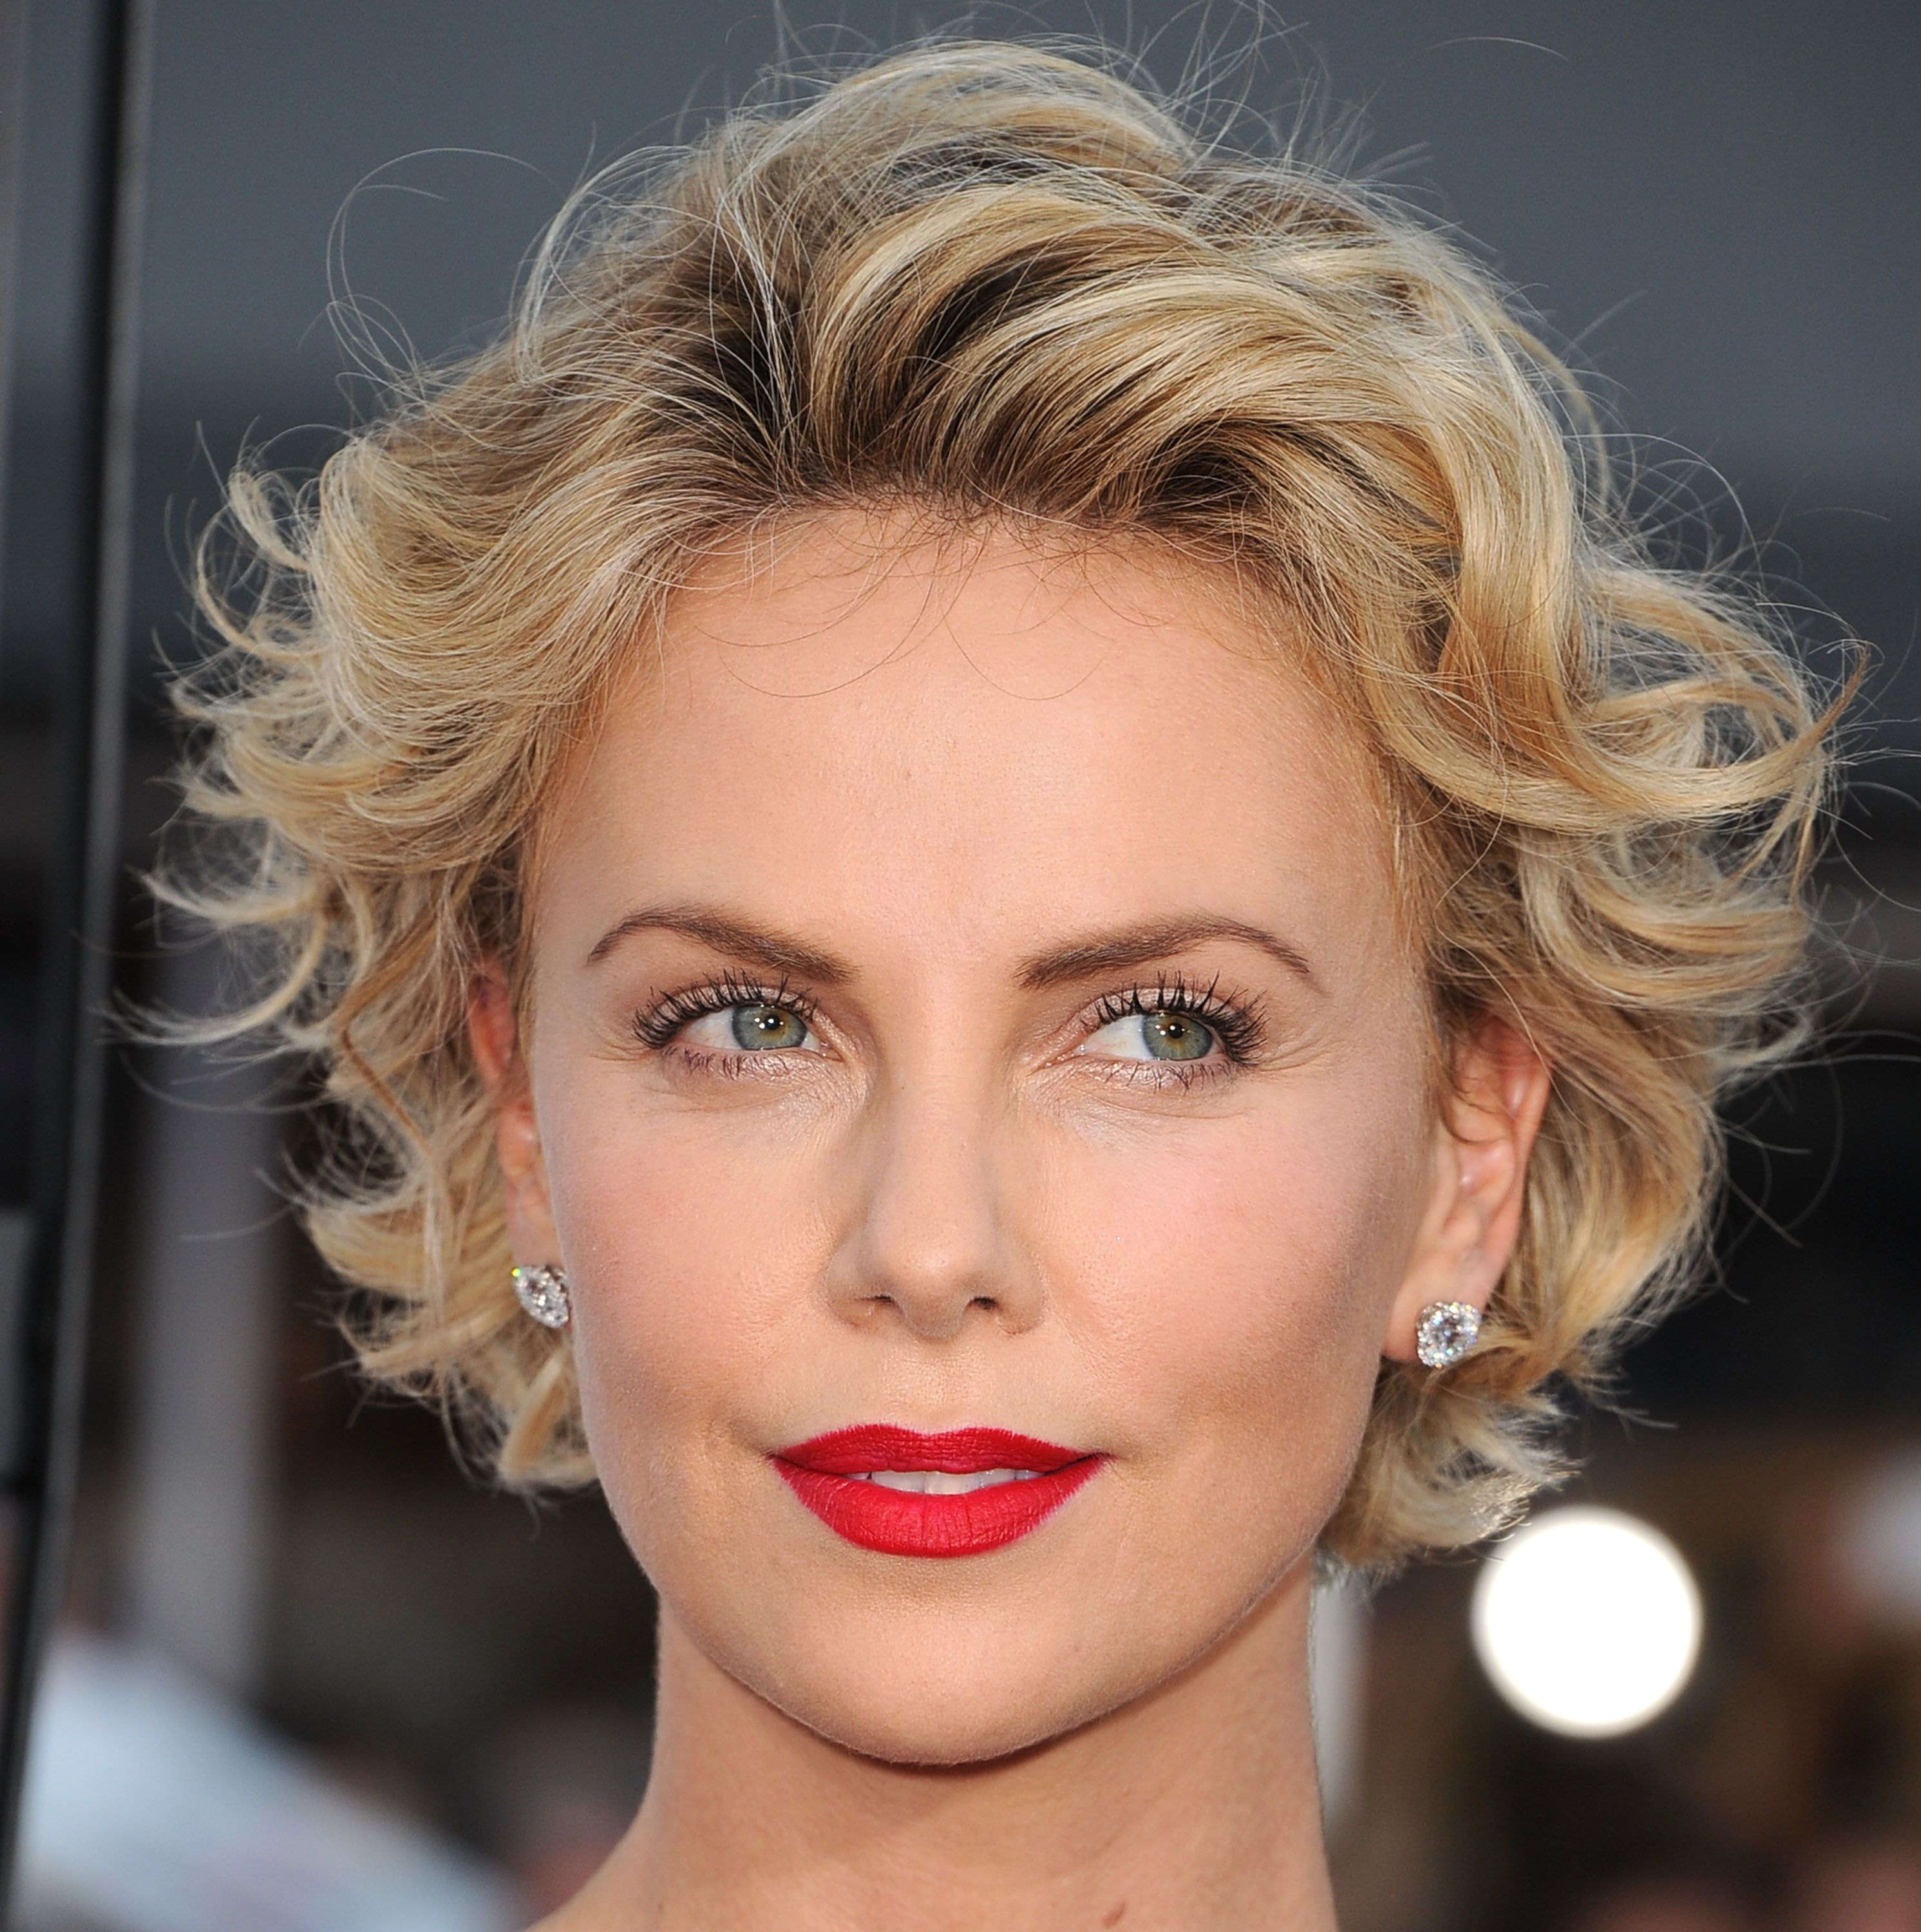 Le Acconciature Per I Capelli Fini Loose Curls Hairstyles Short Curly Haircuts Short Hair Styles